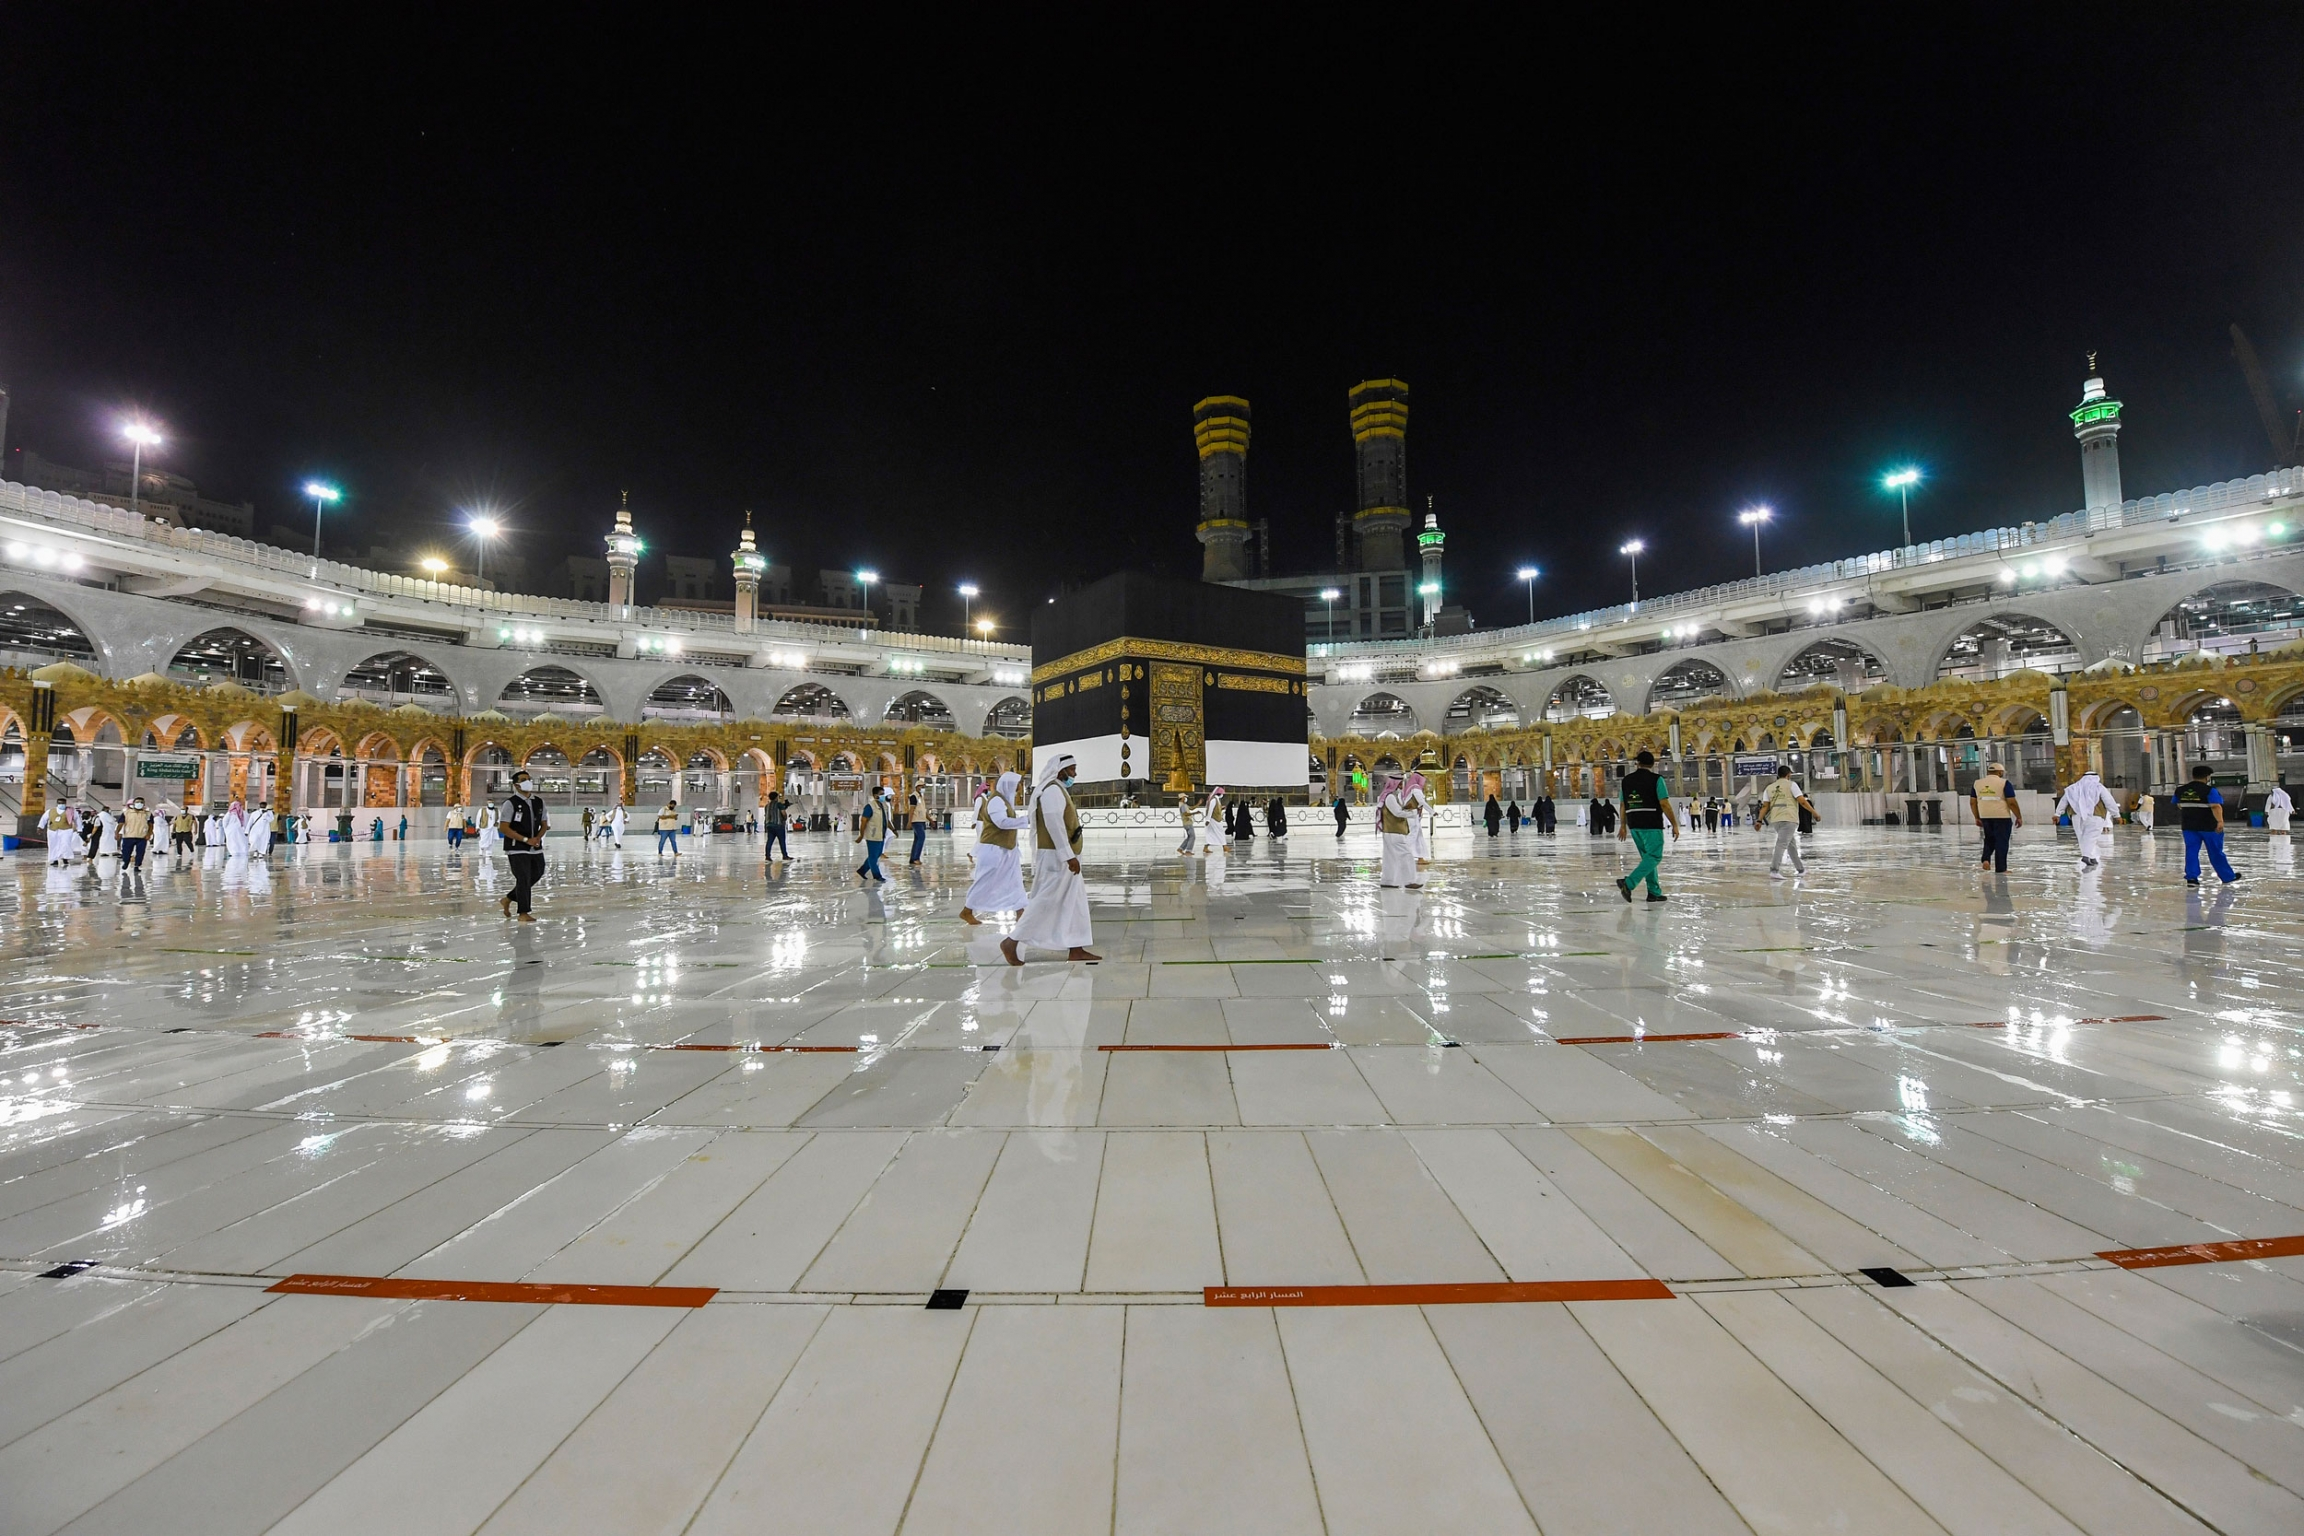 Workers make preparations for the hajj with lights on around the facility showing a shiny floor.